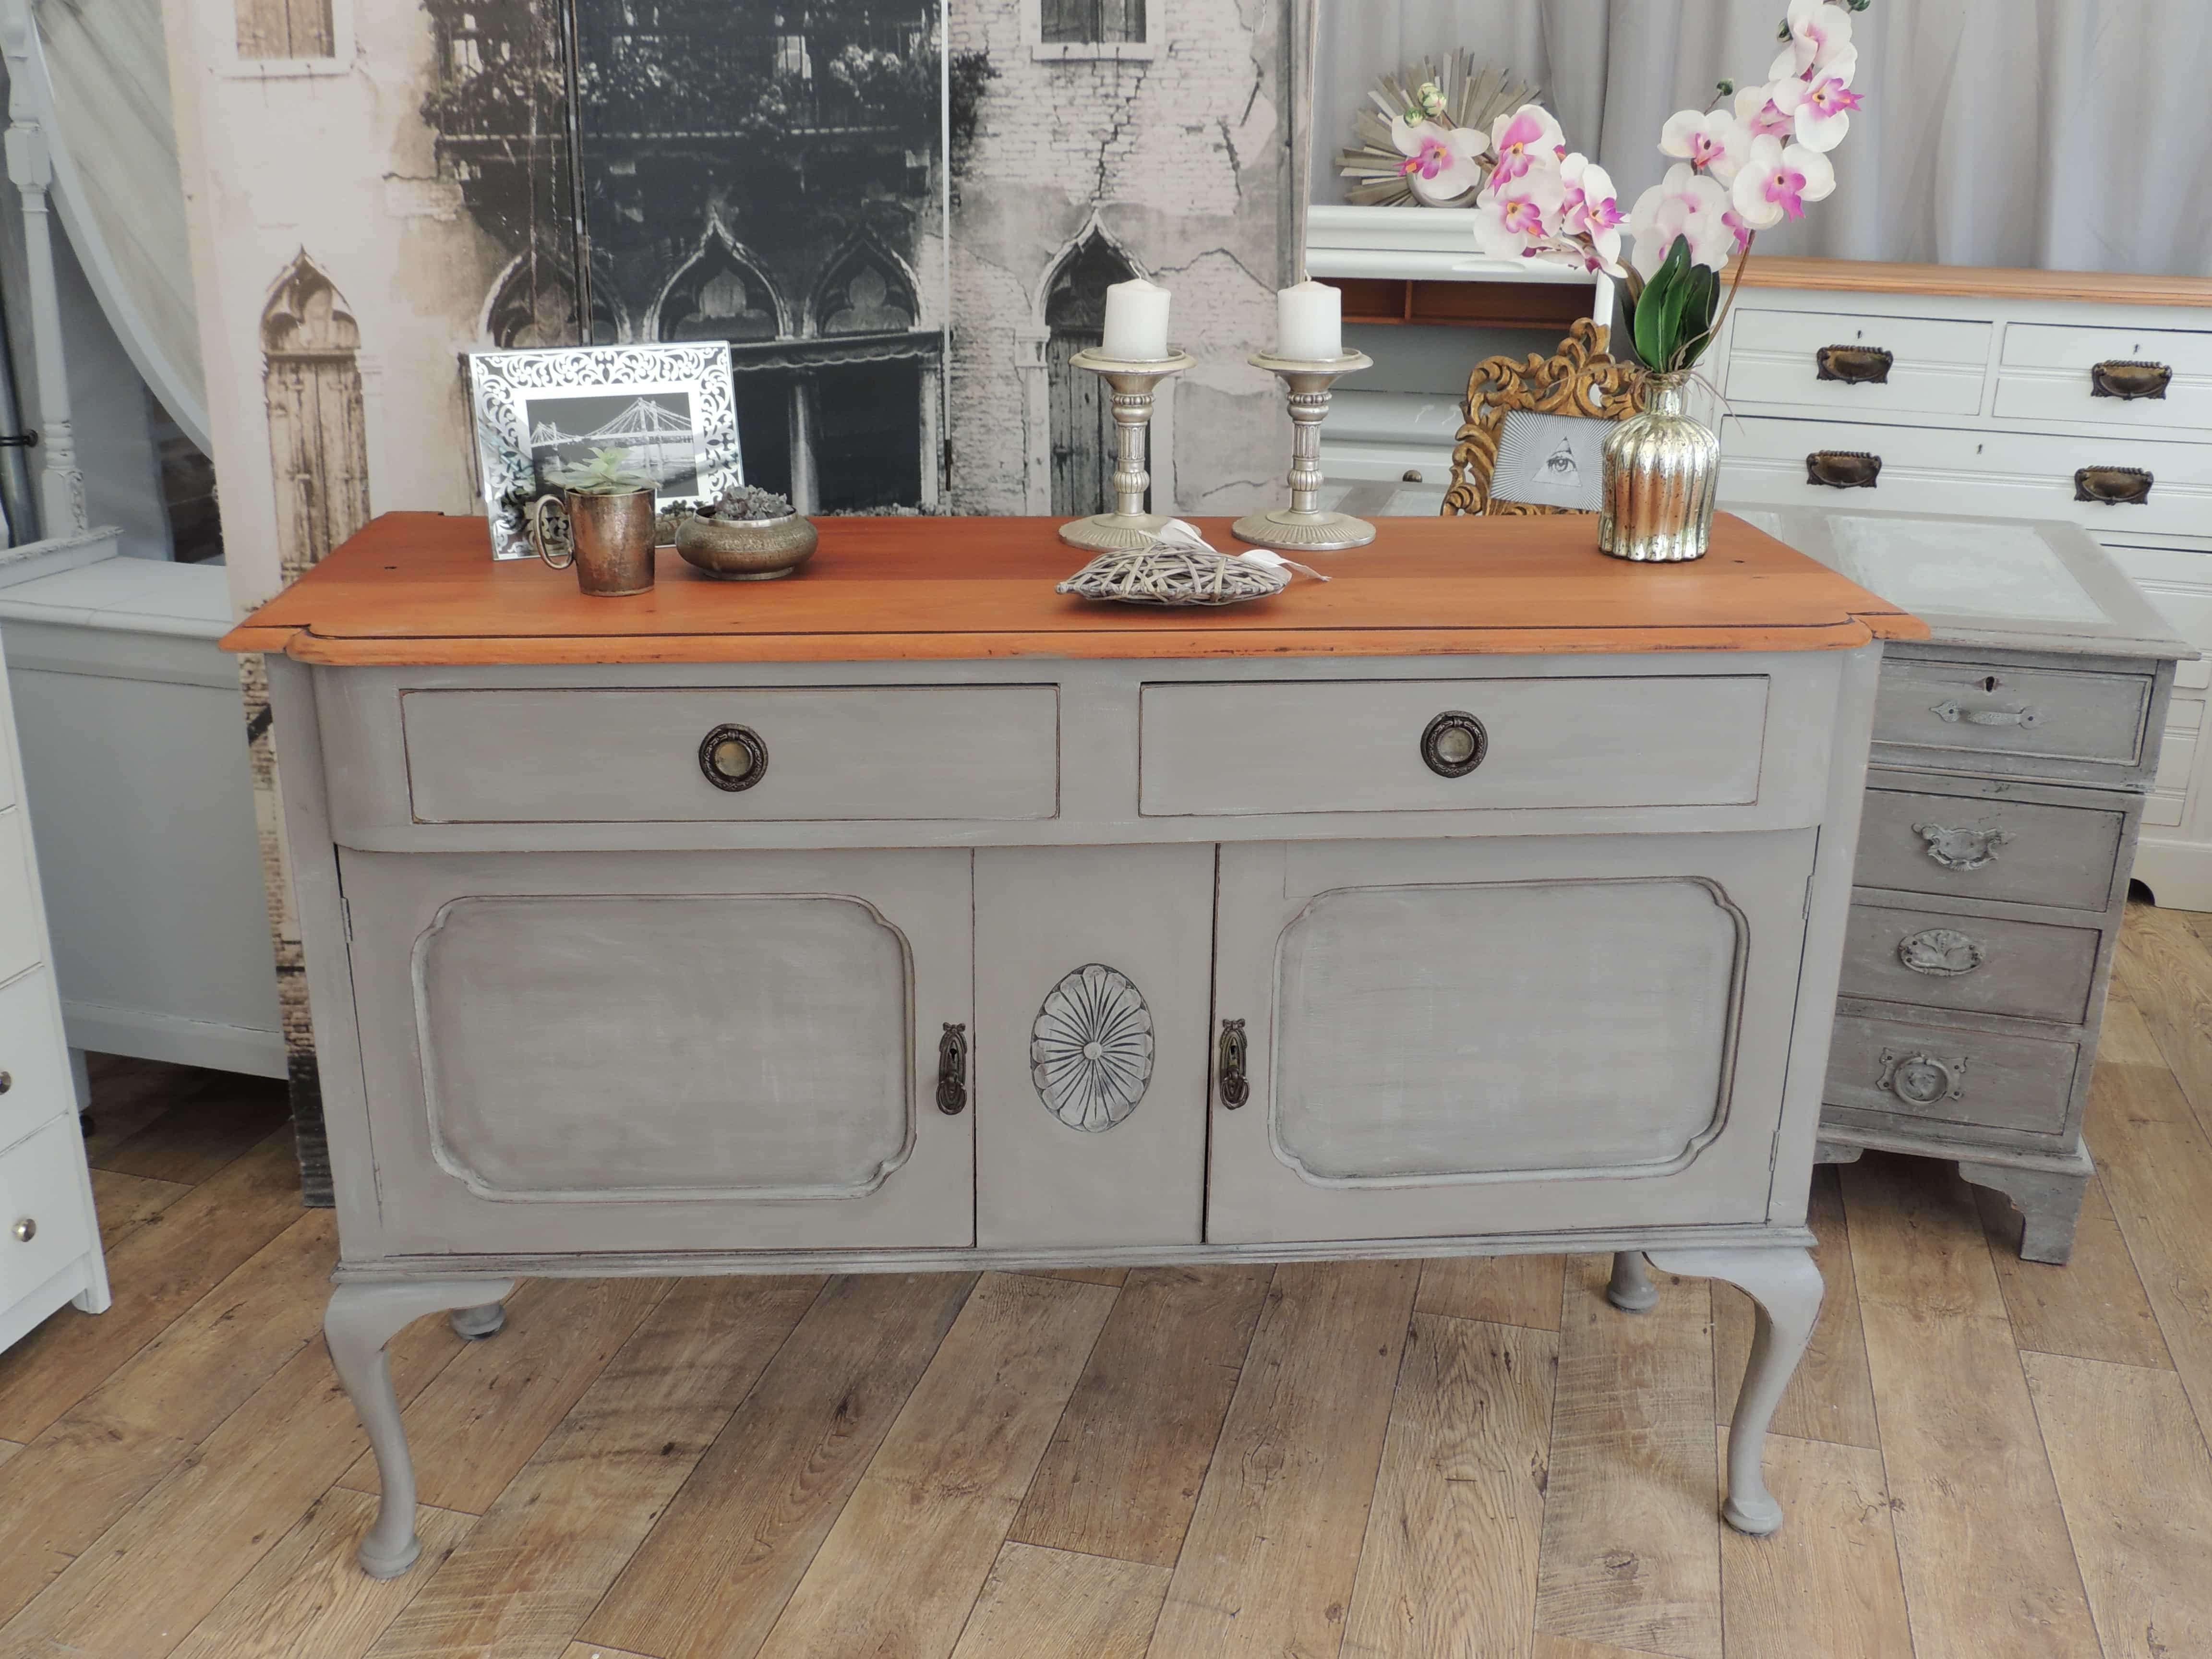 Shabby Chic Edwardian Sideboard – Eclectivo London | Furniture With Regard To Shabby Chic Sideboards (View 13 of 20)